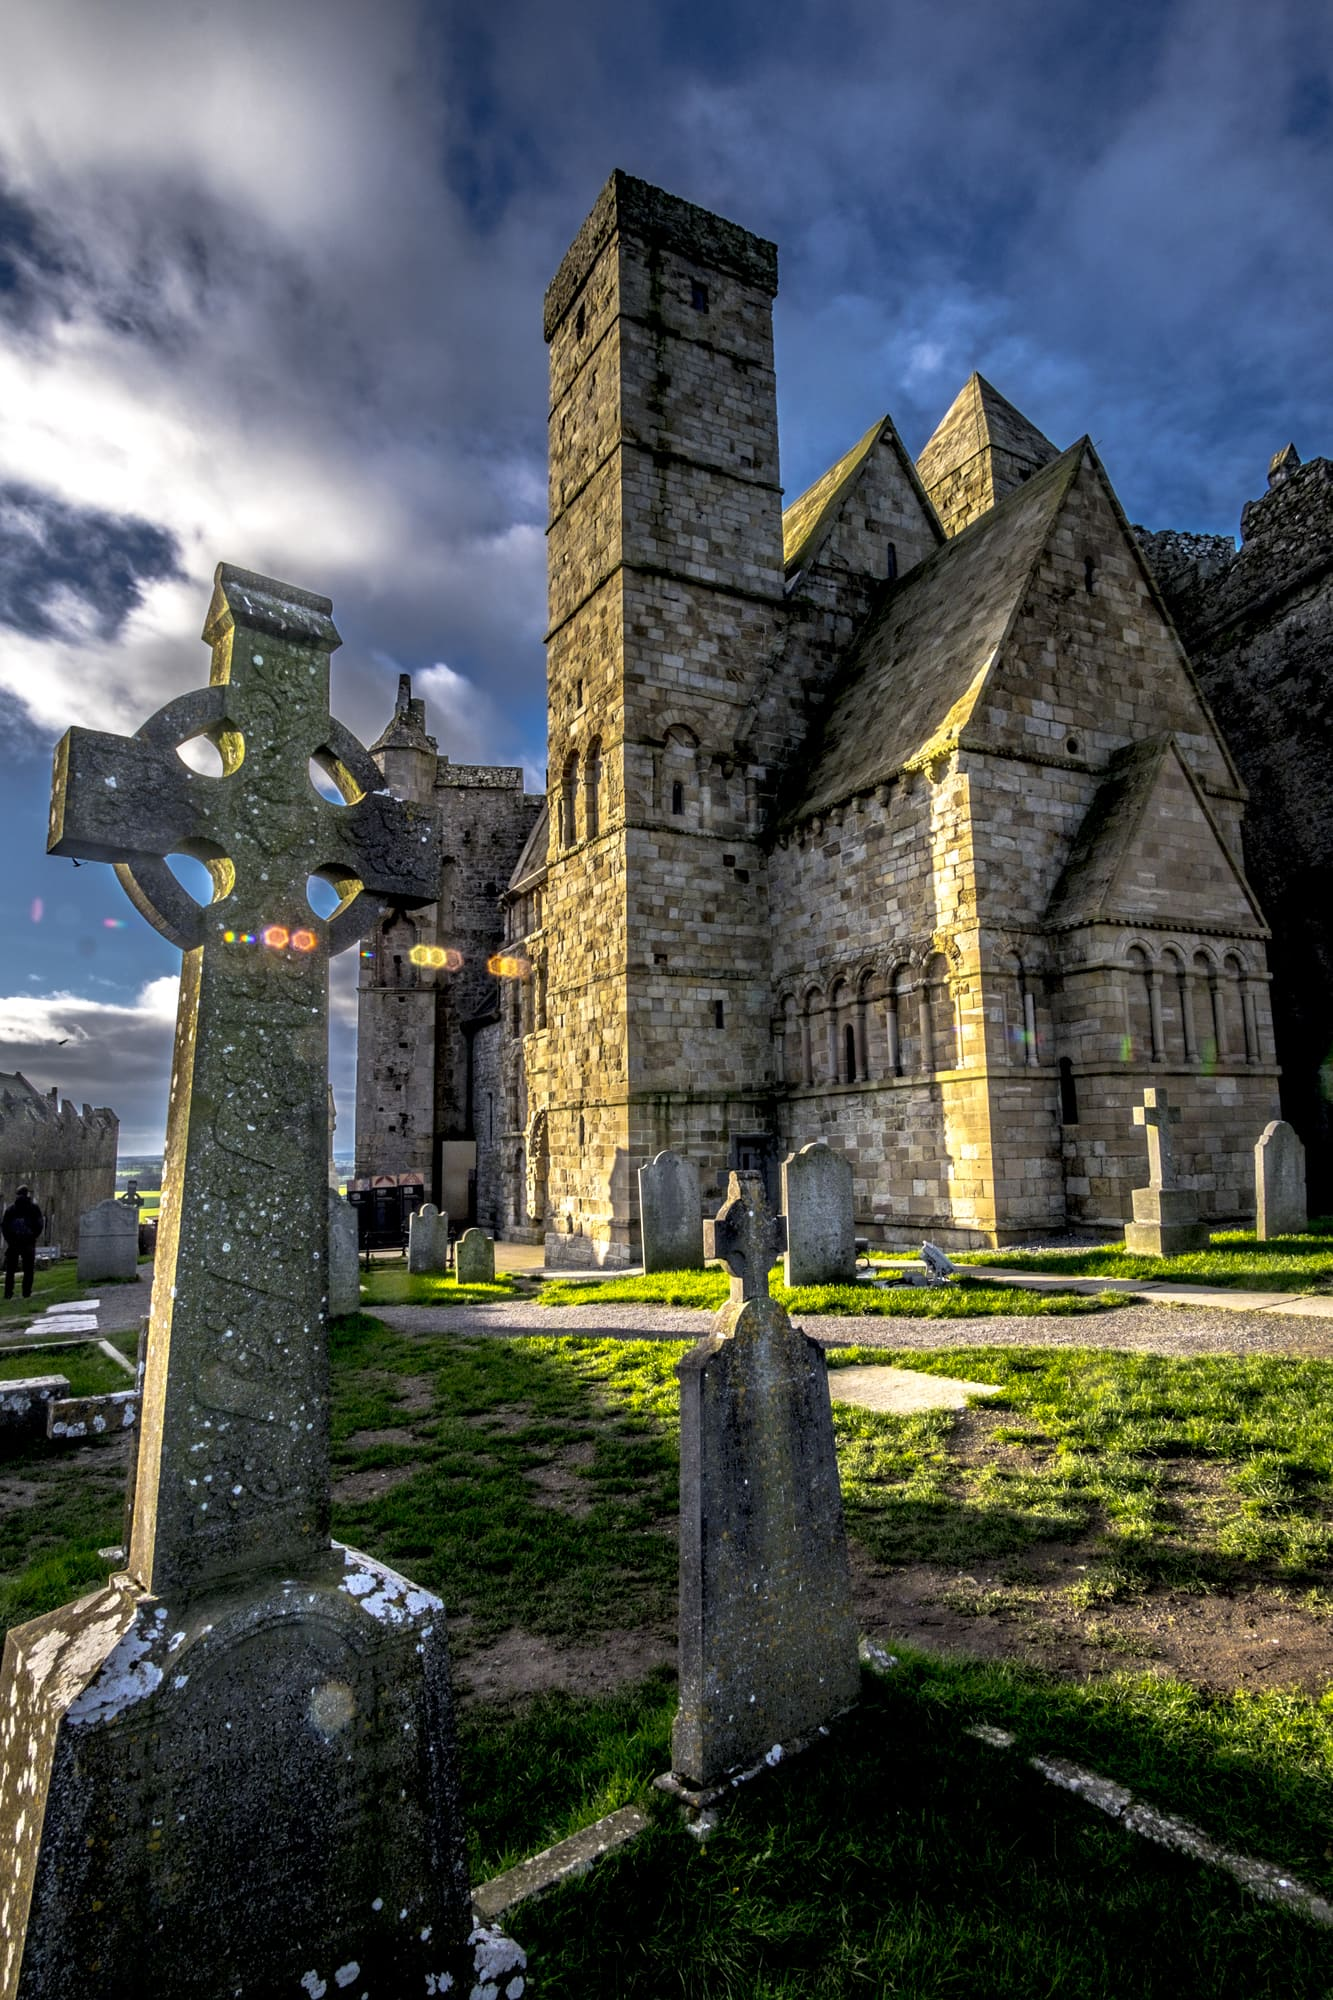 The Best tips for visiting the Rock of Cashel & Hore Abbey